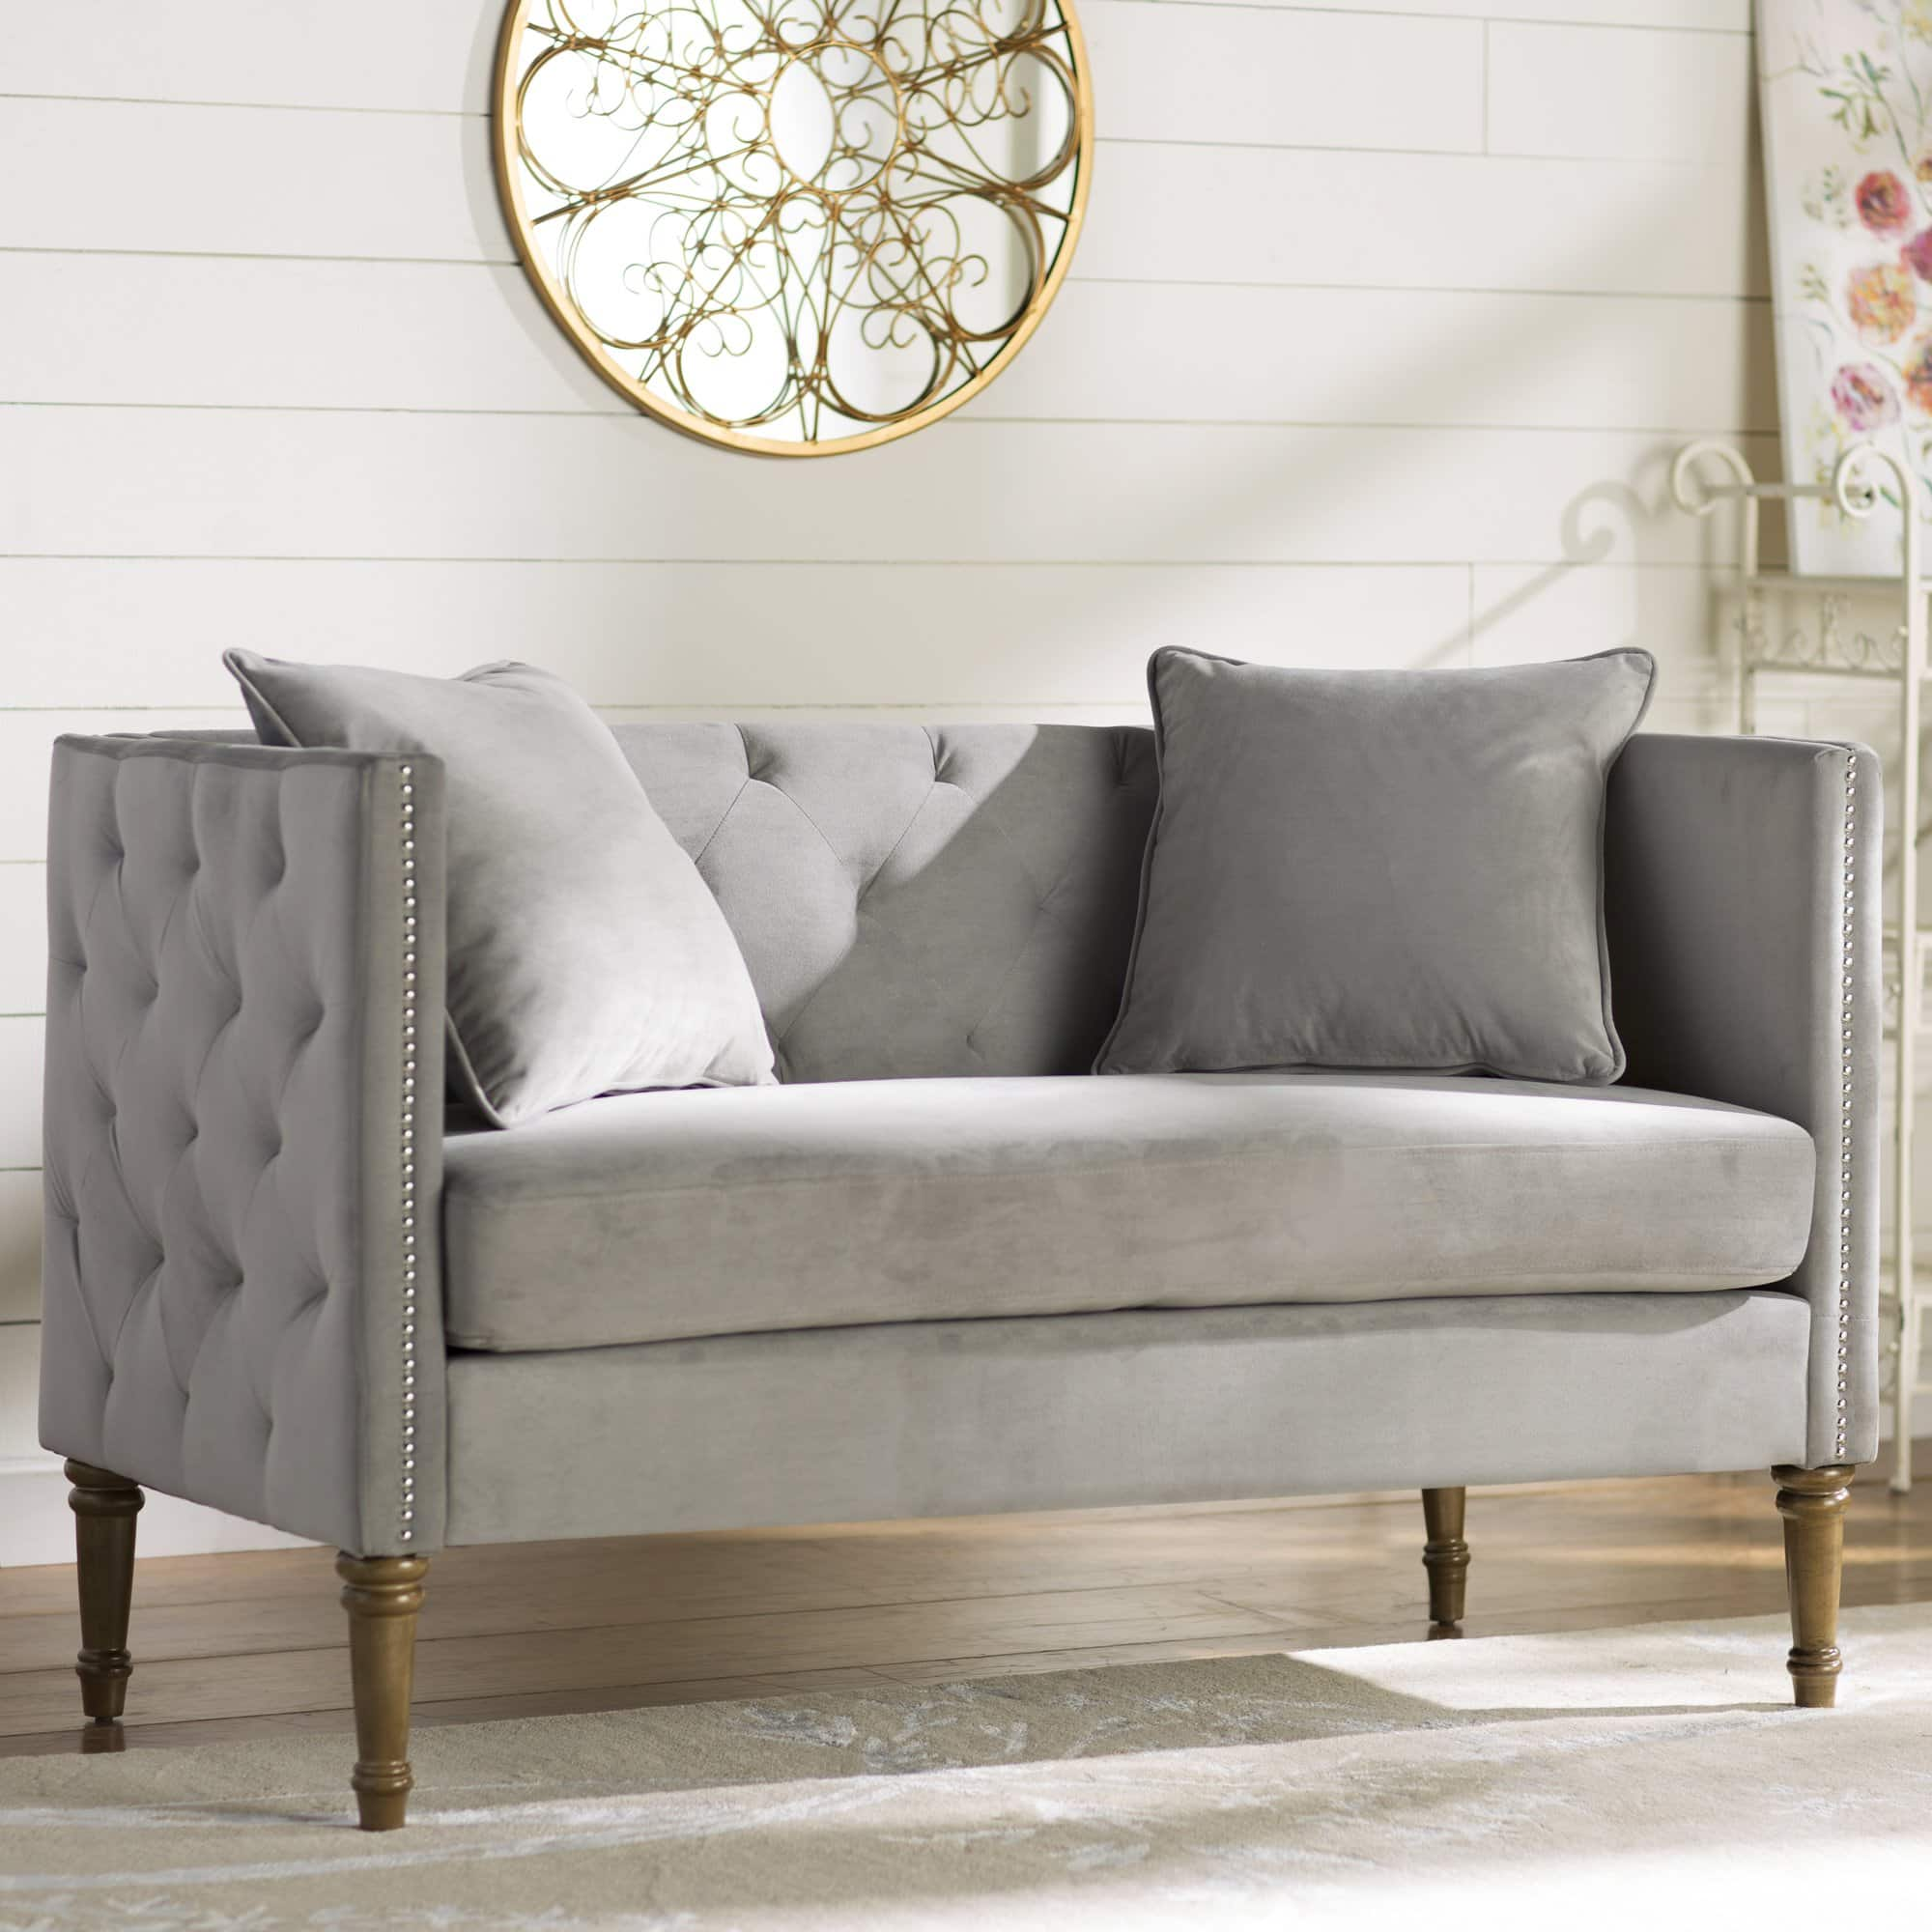 Grey tufted French settee